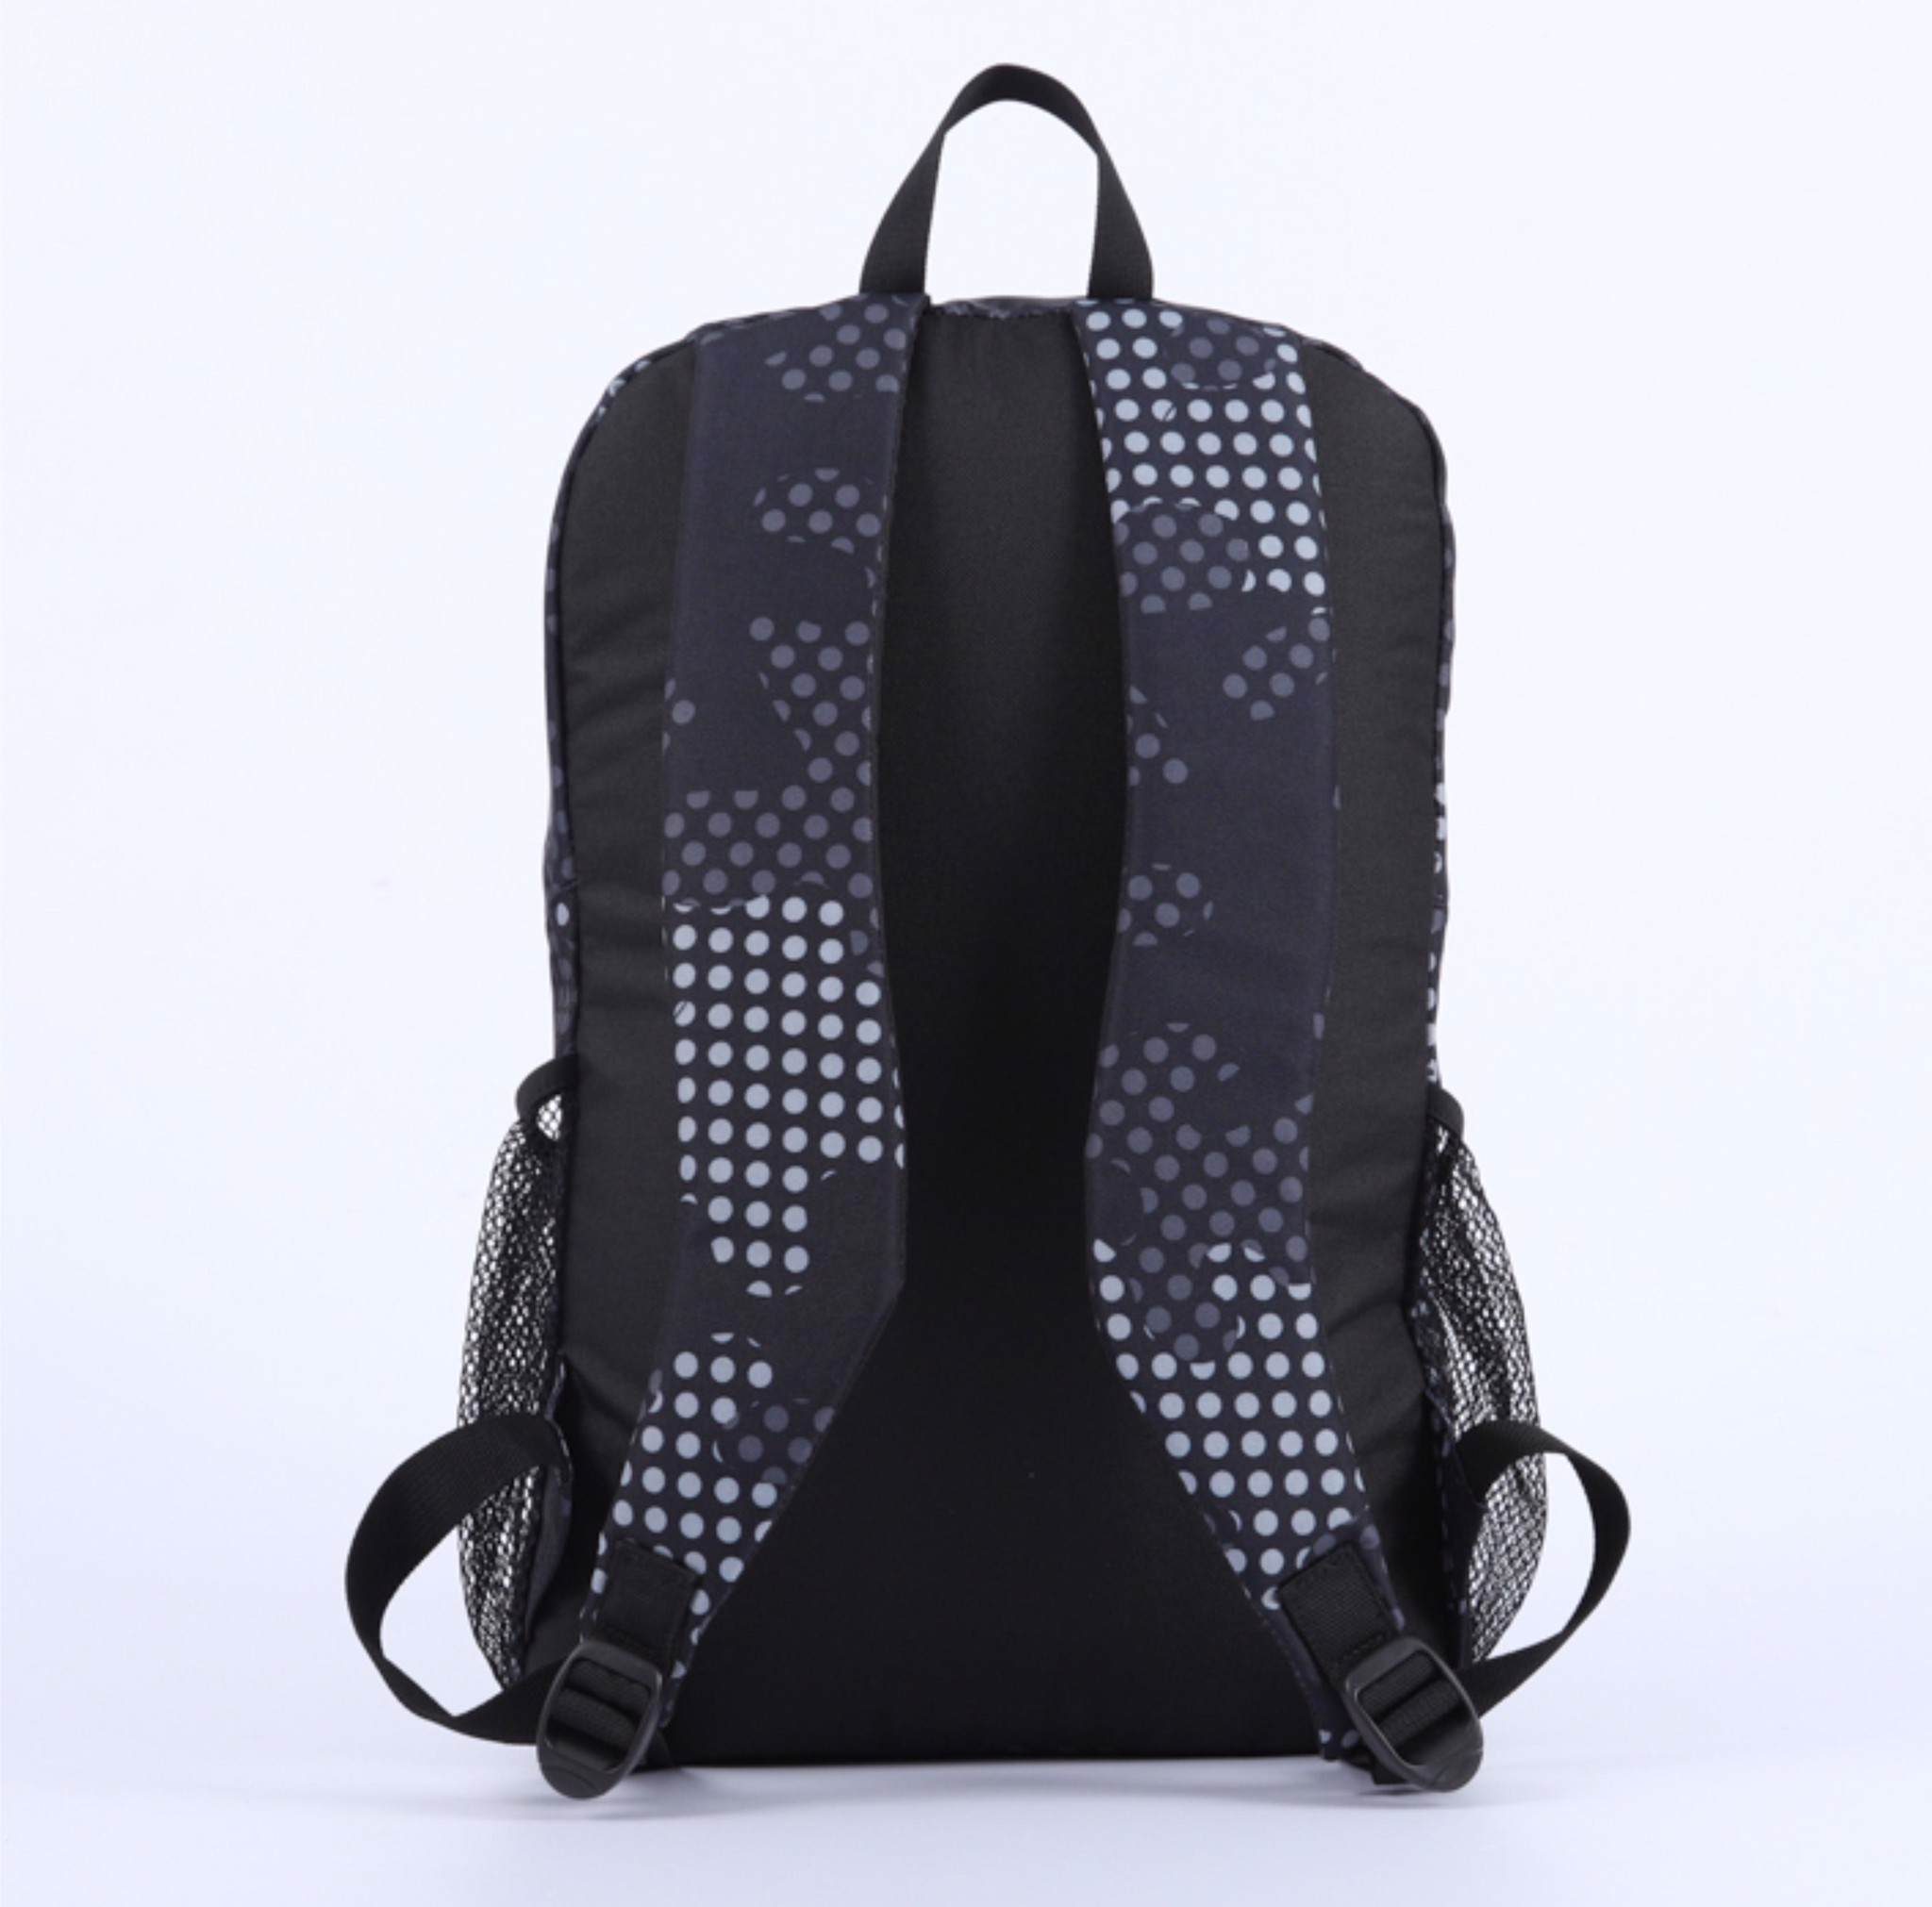 Balos AKIRA Black/Grey Backpack - Balo Thời Trang